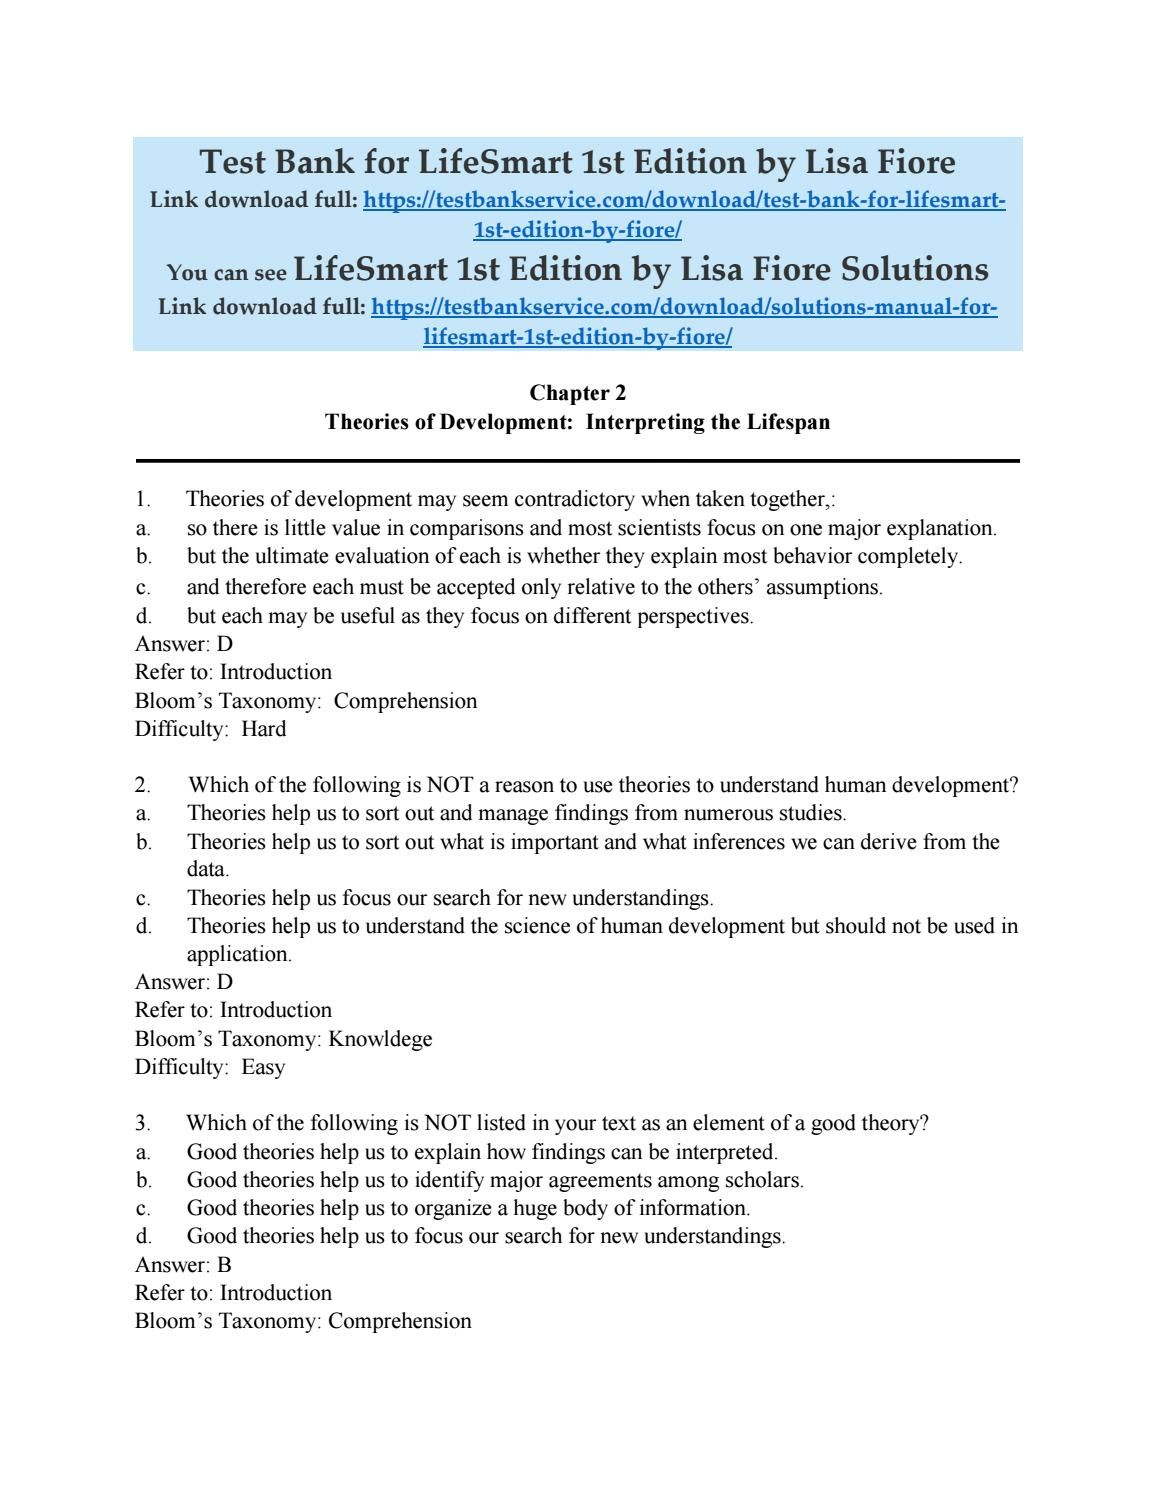 Test bank for lifesmart 1st edition by lisa fiore